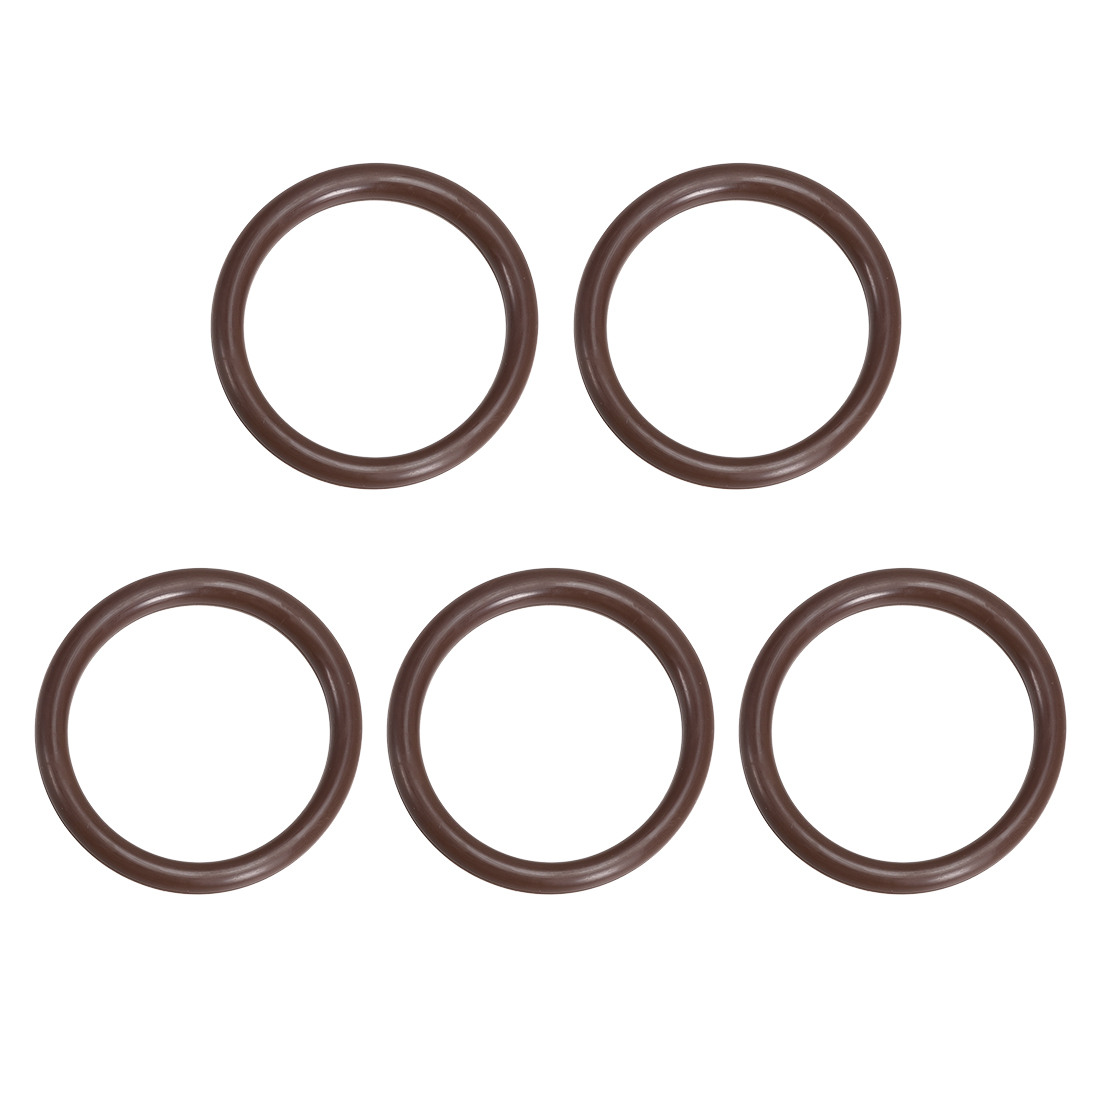 5 Pcs Fluororubber Gasket Sanitary Clamp Washer 63mm x 53mm O-Ring